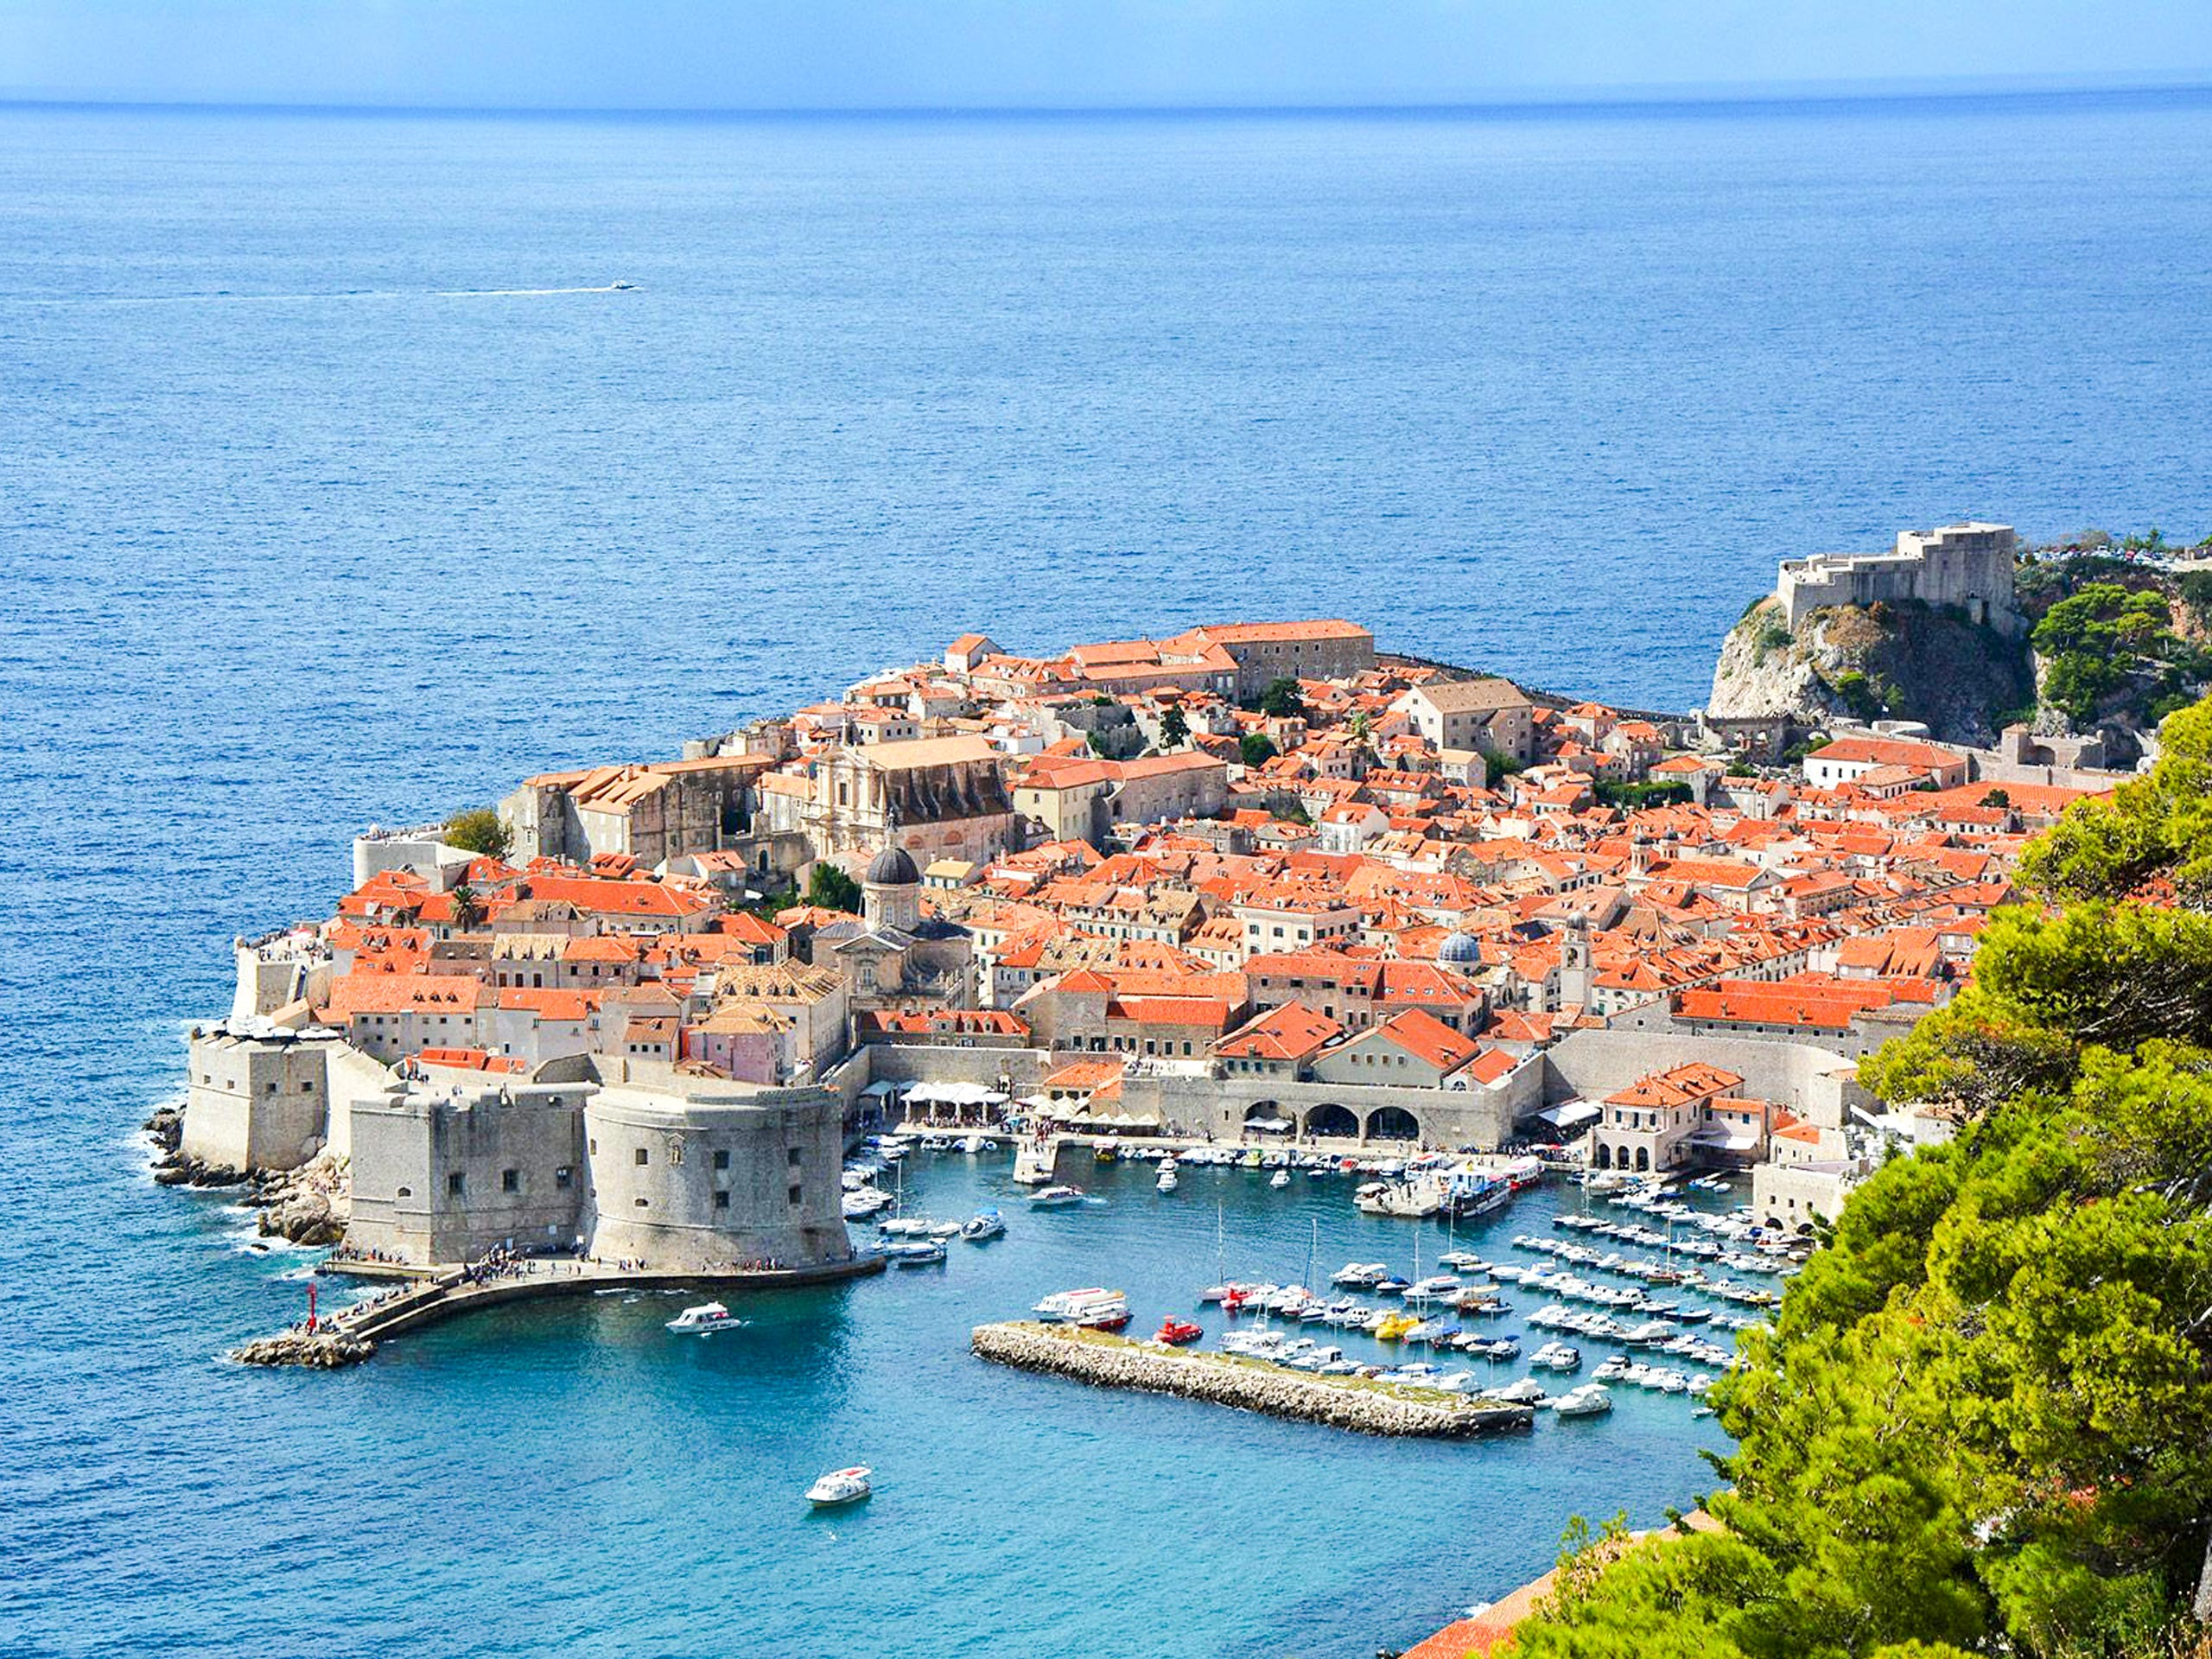 The Walls of Dubrovnik panoramic view